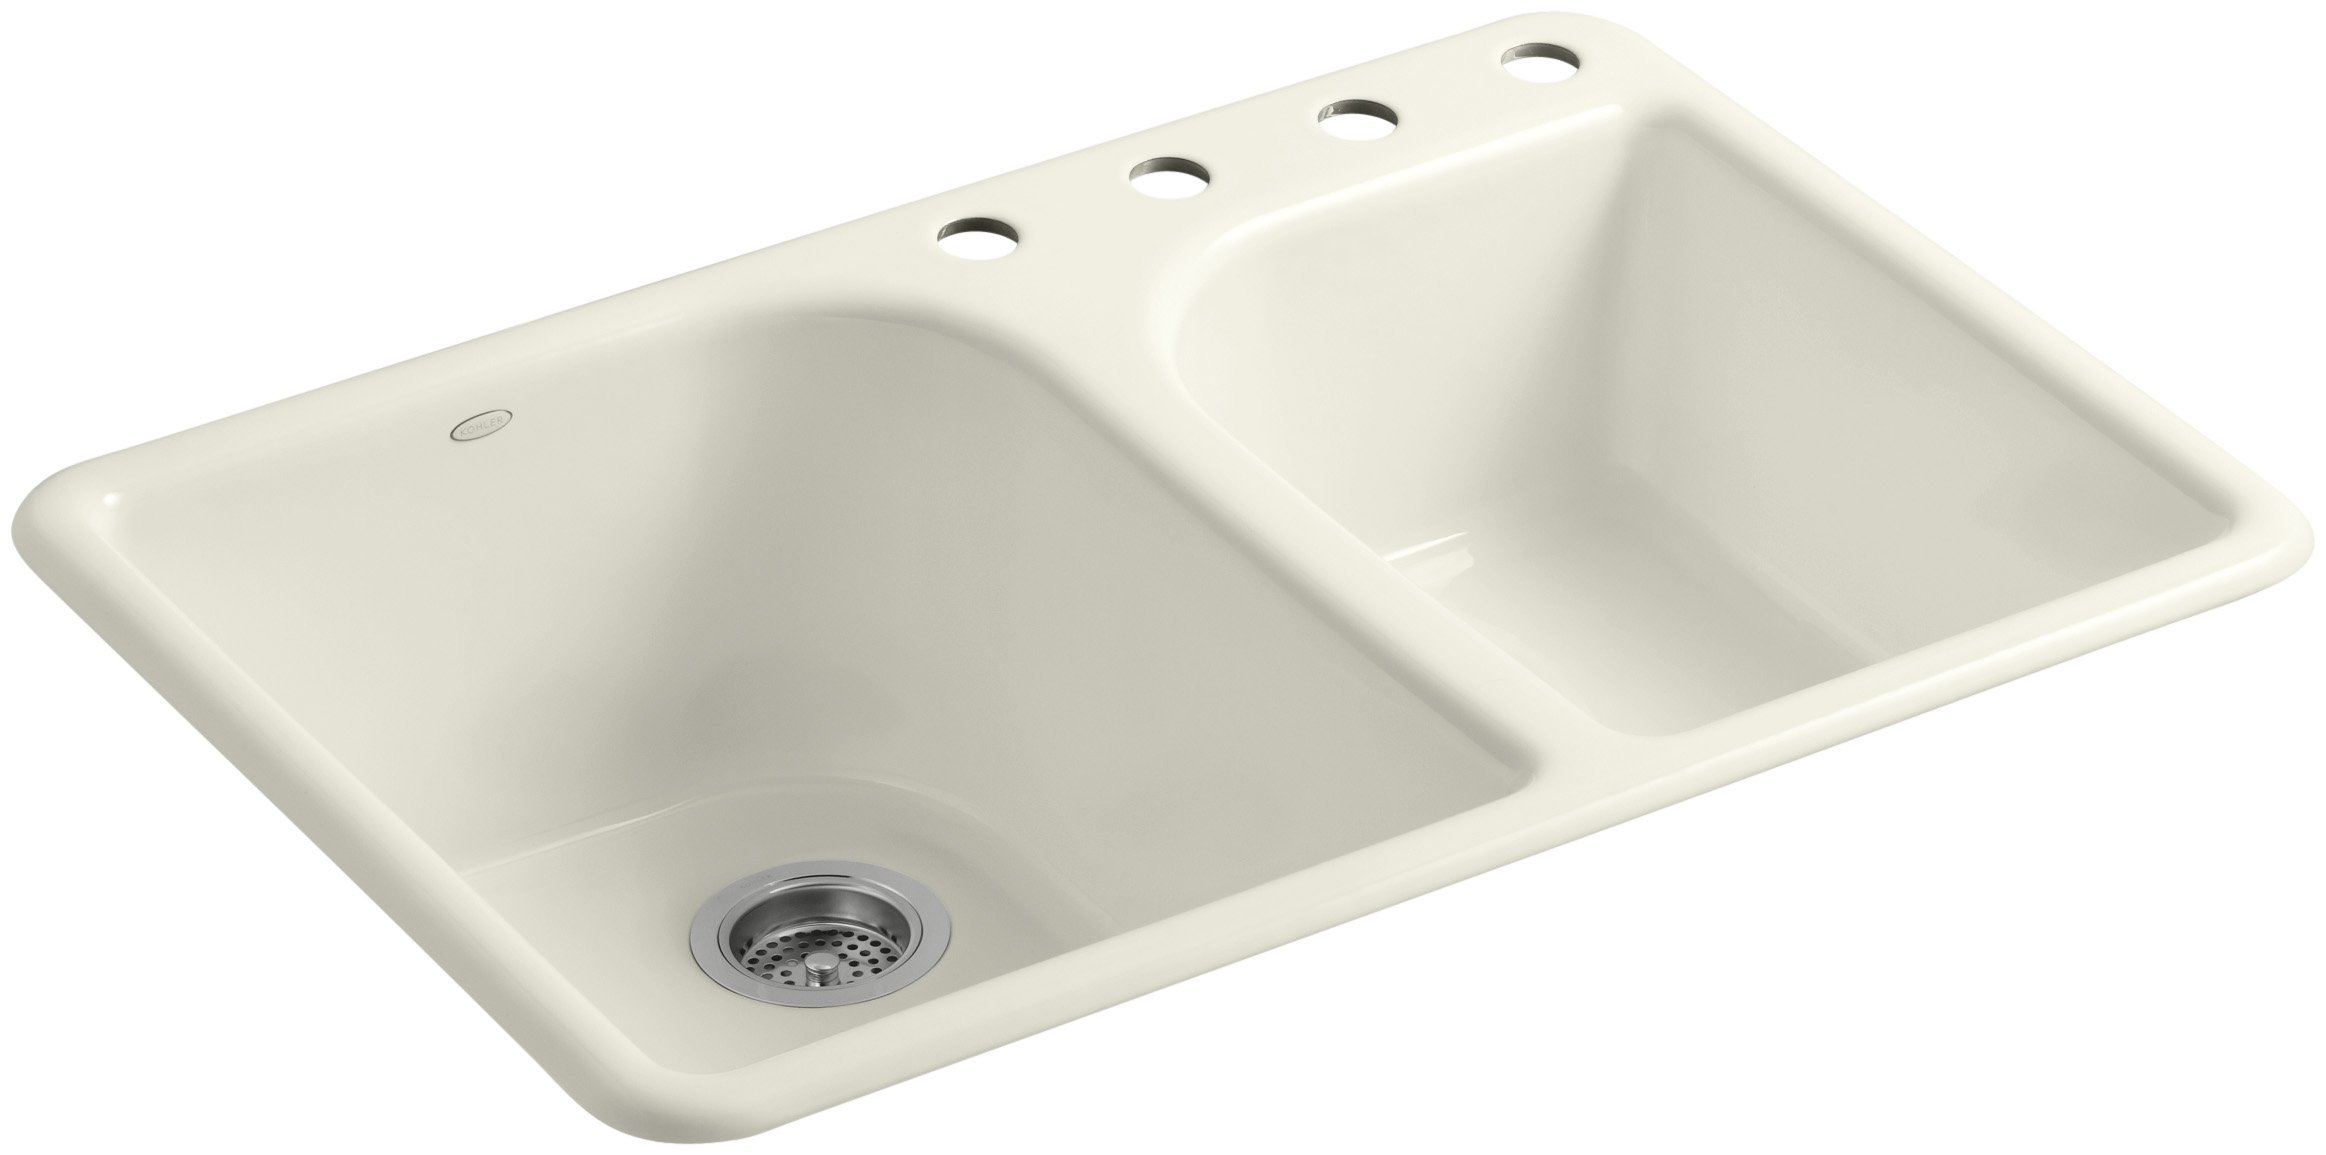 KOHLER K-5932-4-96 Executive Chef Self-Rimming Kitchen Sink, Biscuit